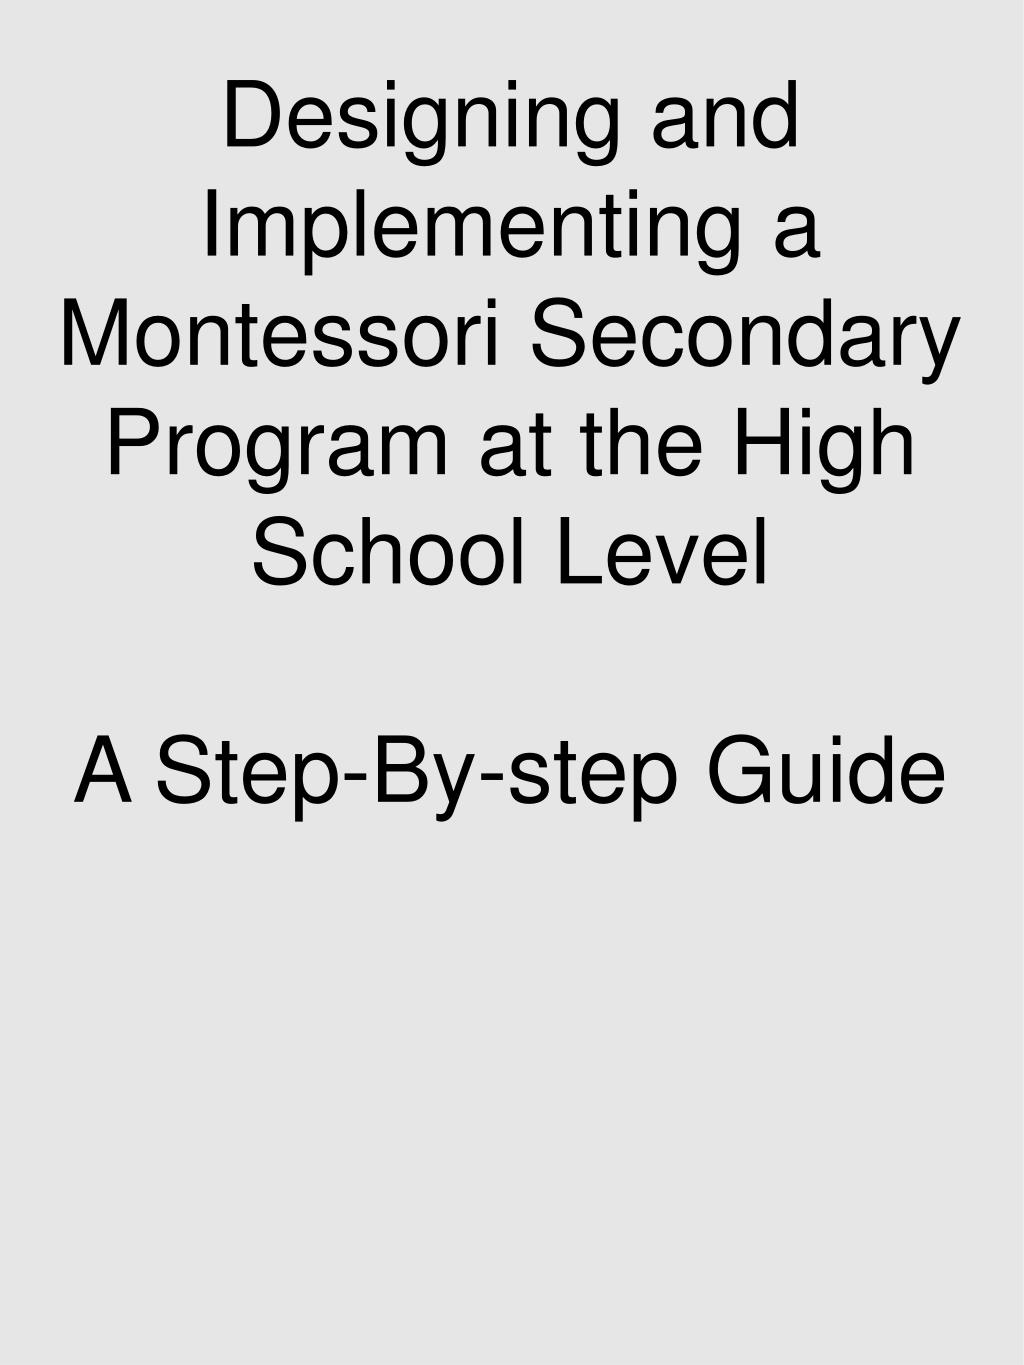 Designing and Implementing a Montessori Secondary Program at the High School Level